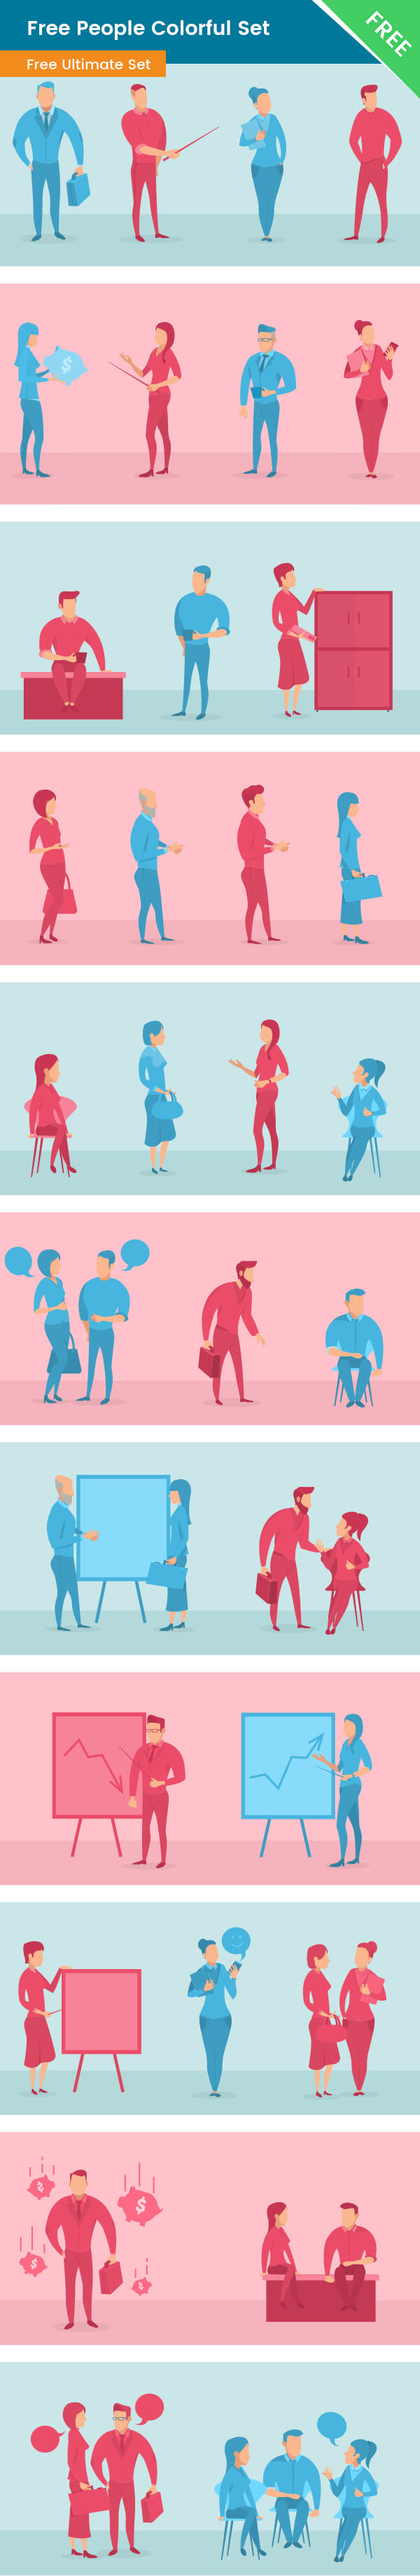 People vector Free colorful set